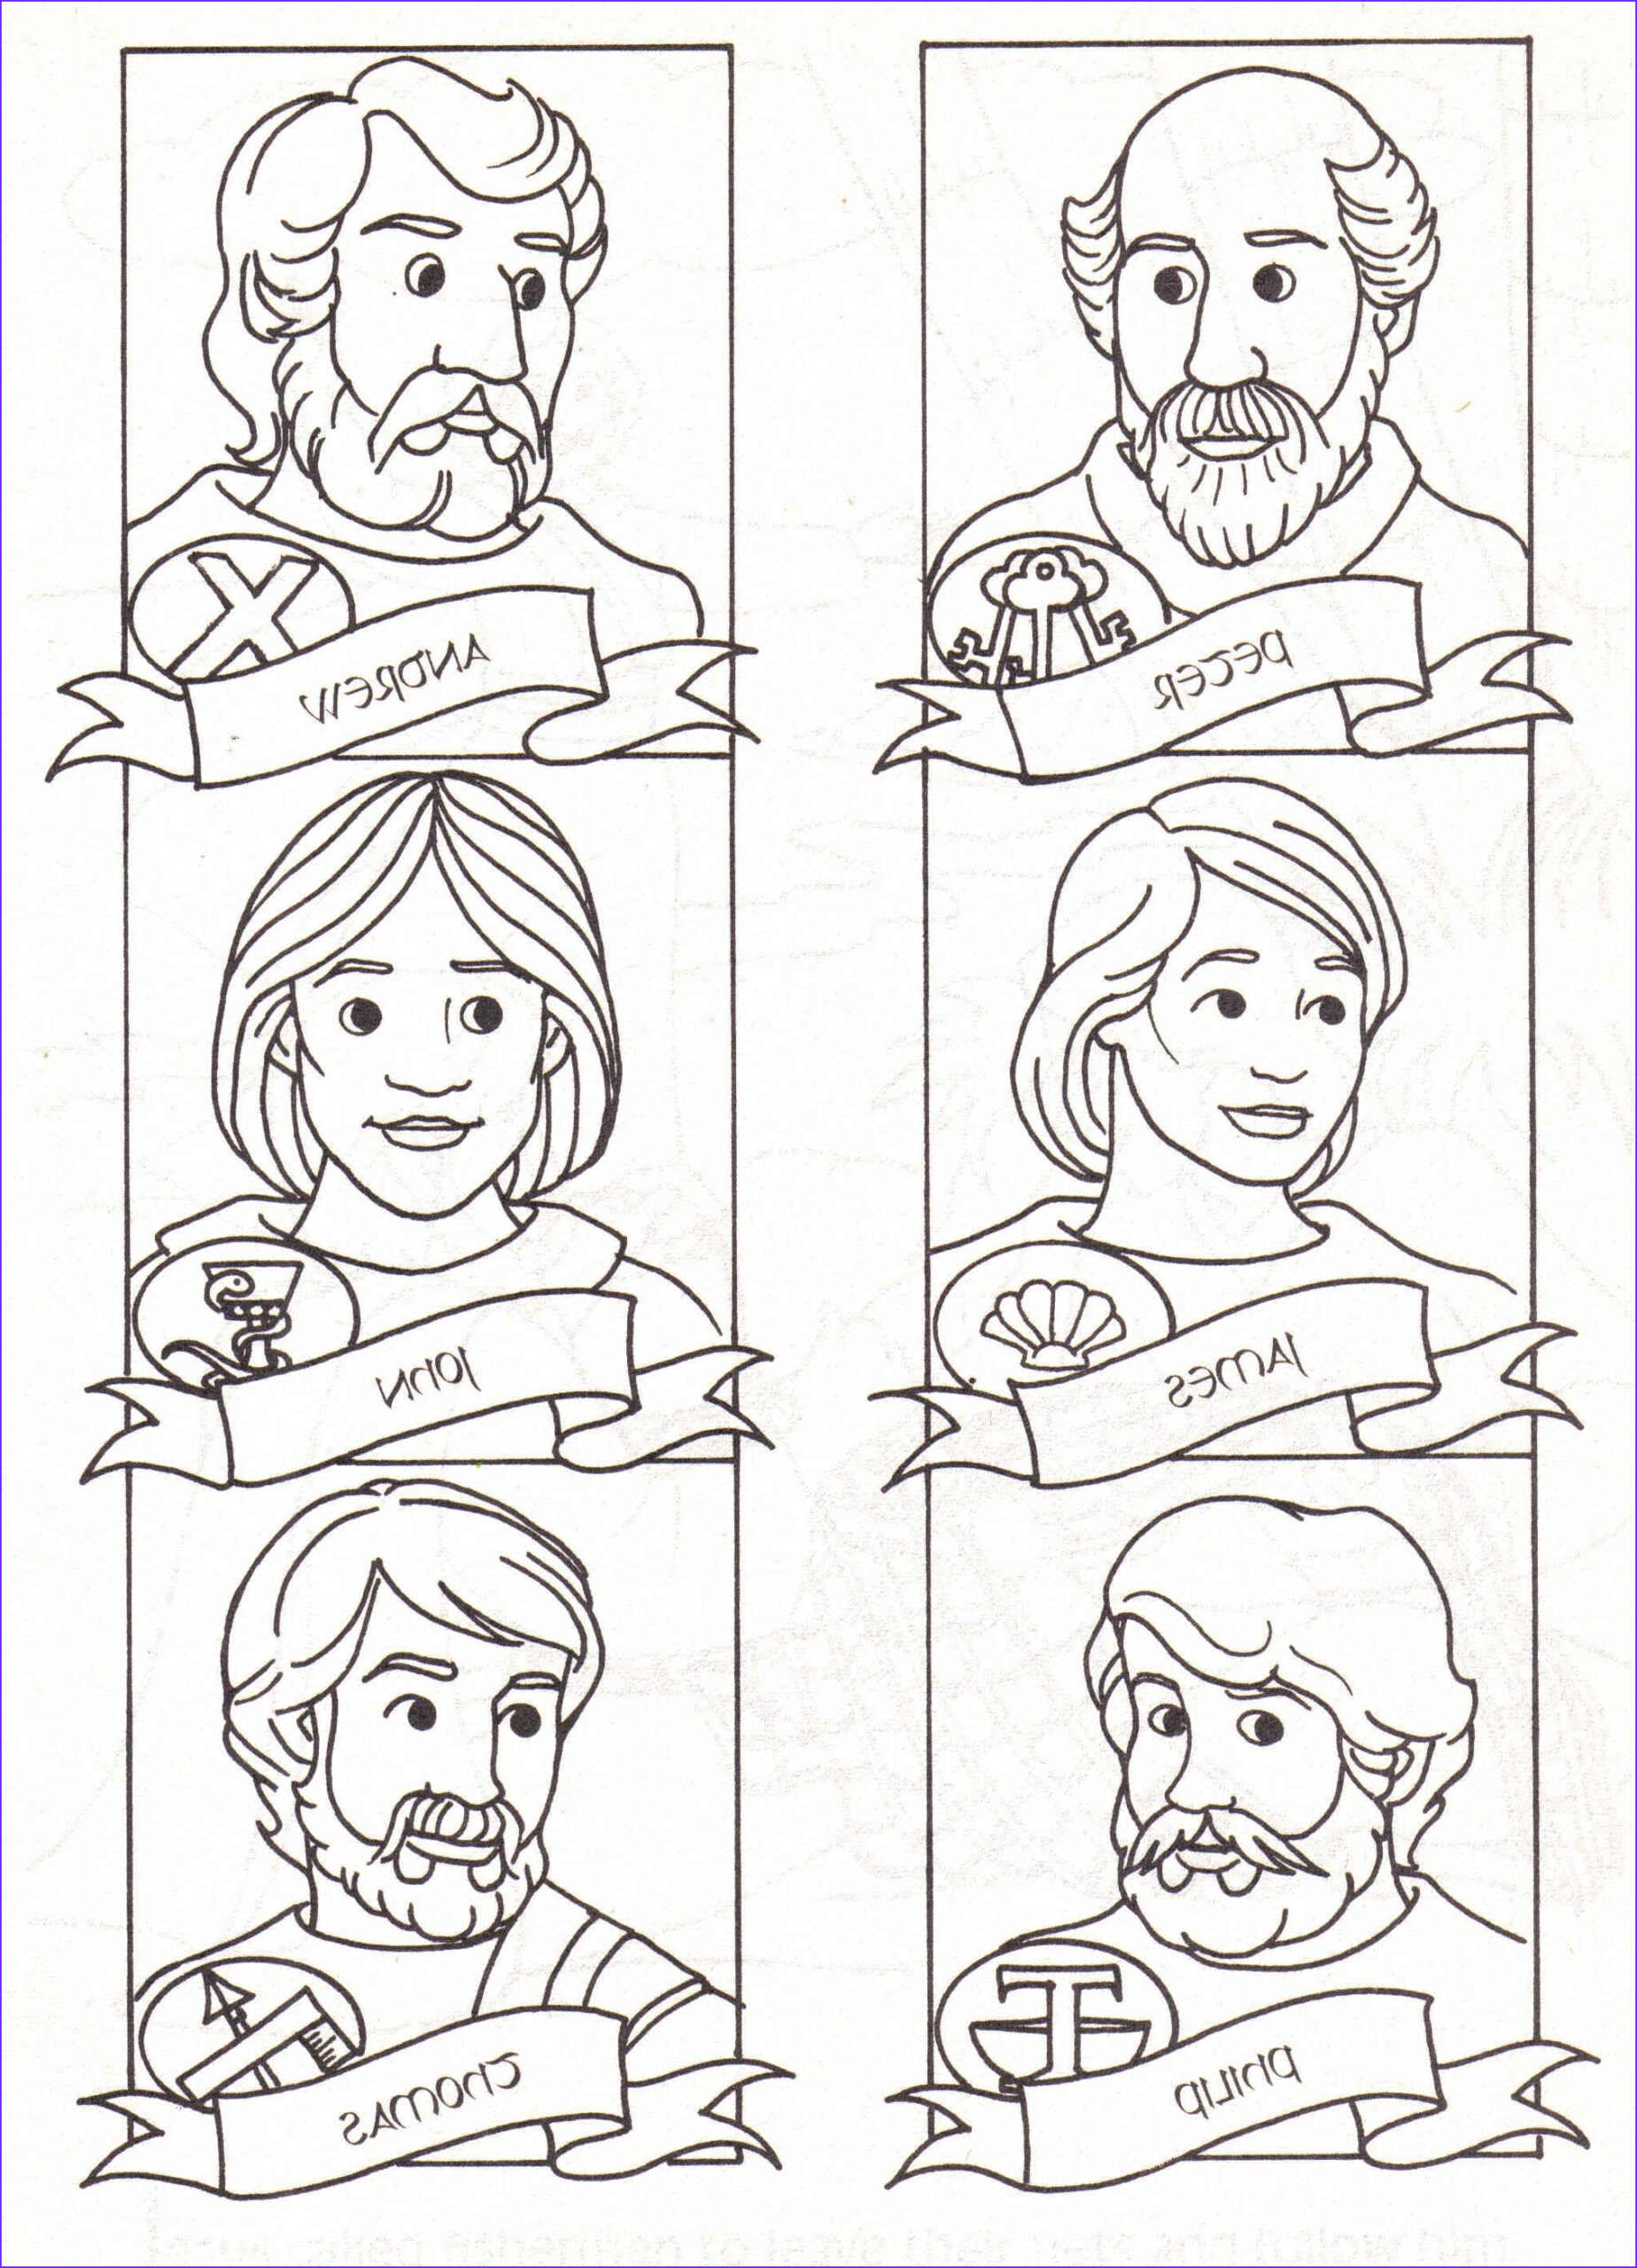 12 Disciples Coloring Page Inspirational Images 12 Disciples Coloring Page Download